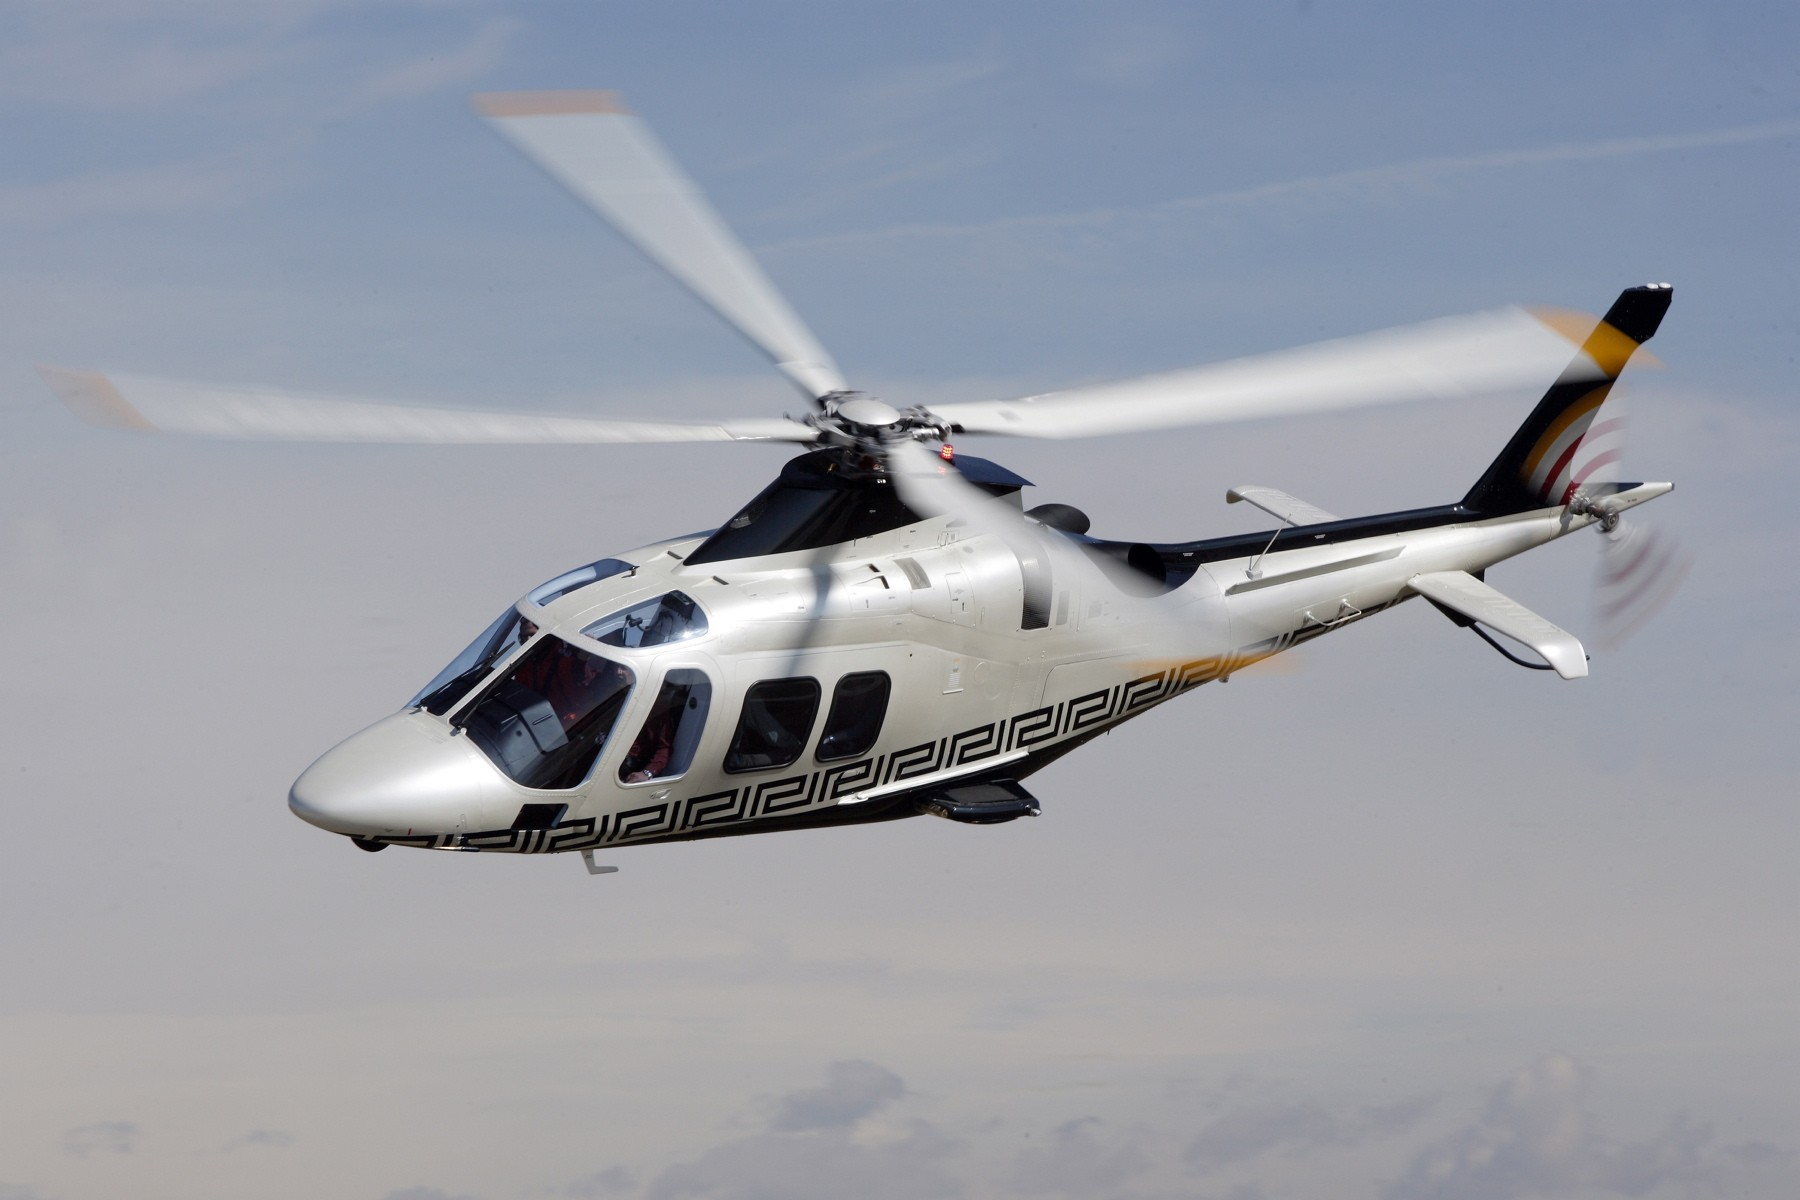 Helicopter Robinson R44 209.12 Kb